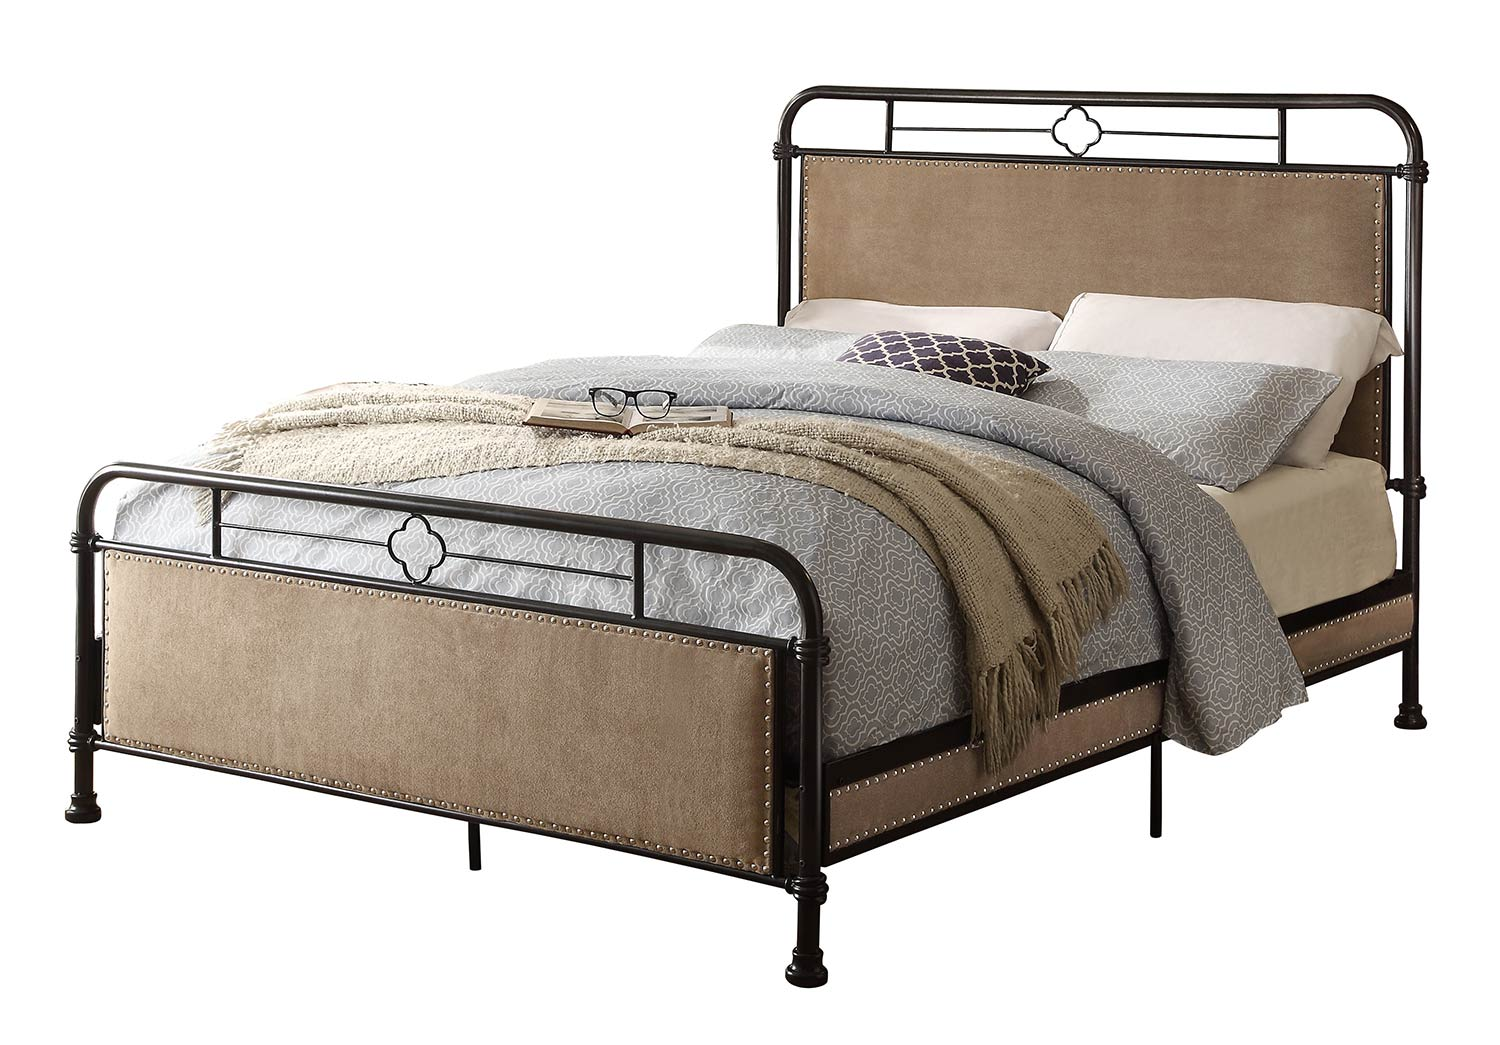 Homelegance Tayton Bed - Black/Brown